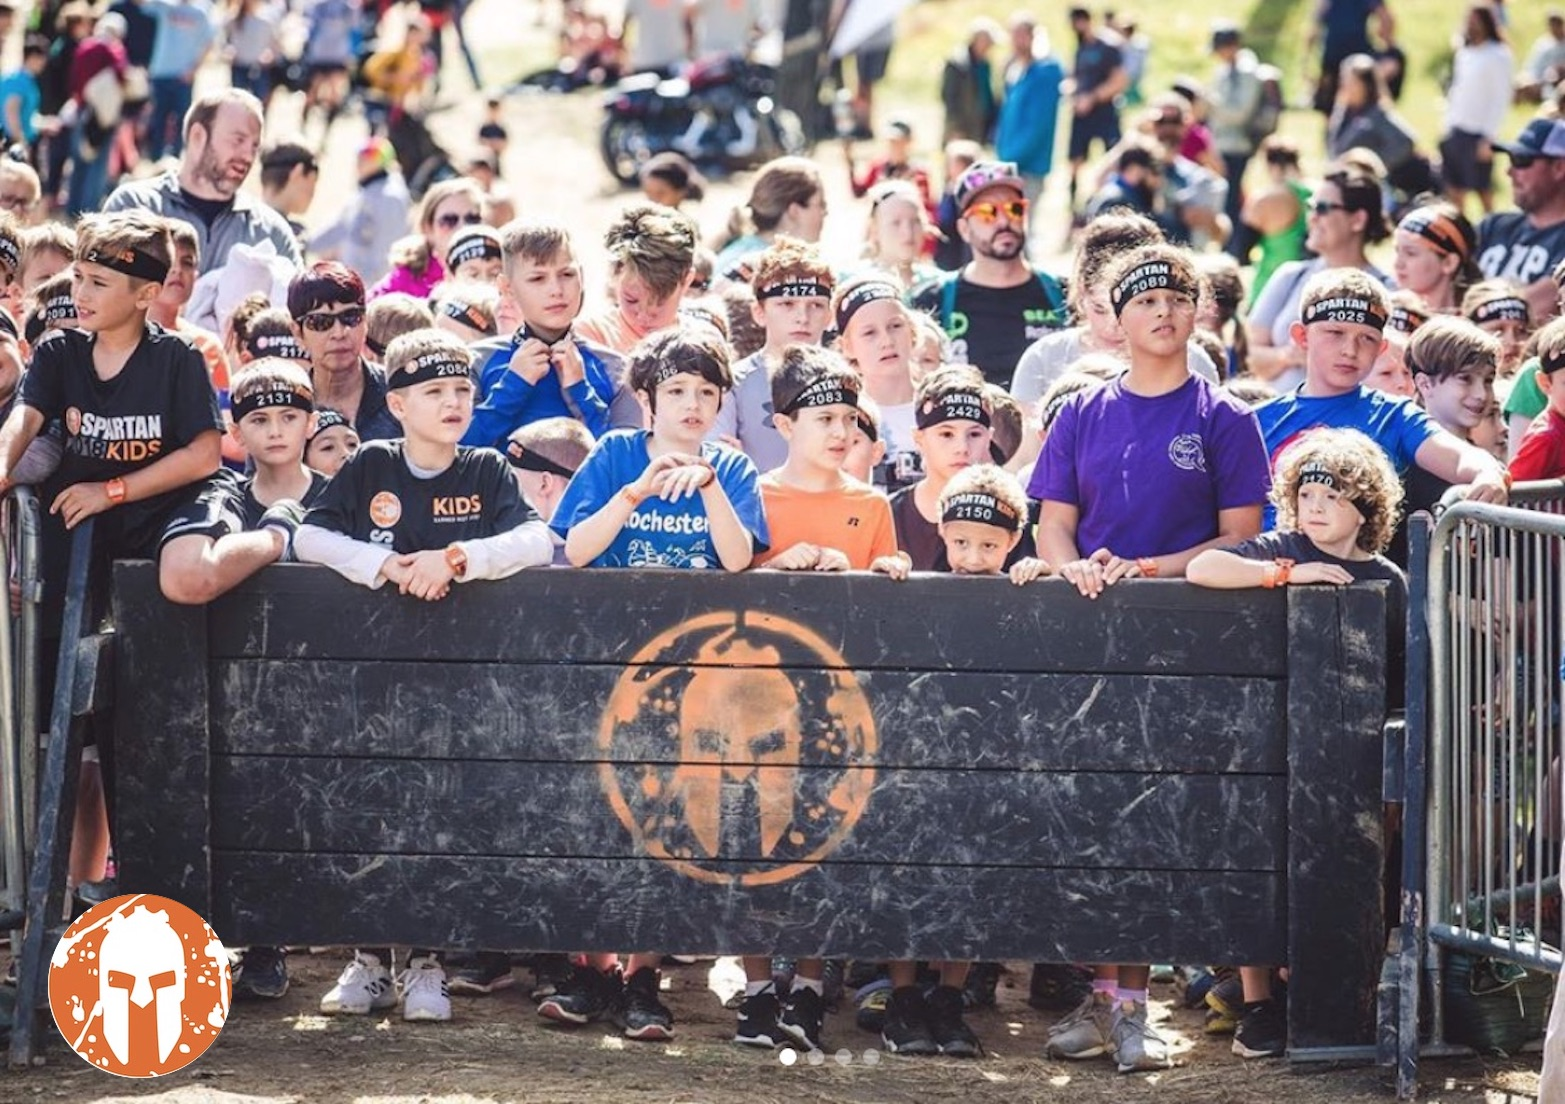 West Virginia Kids Race - August 29th & 30th 2020